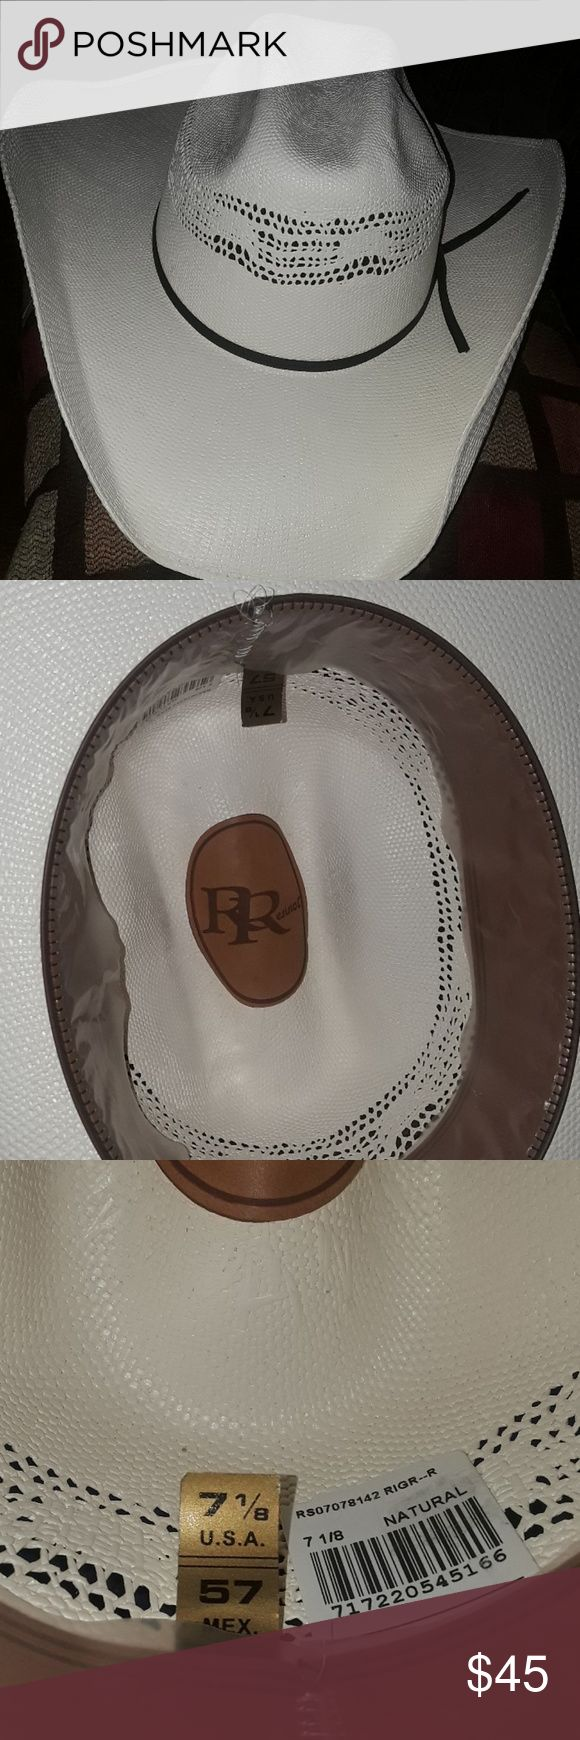 Resistol Cowboy Hat 7 1/8 Natural Nice hat, clean, plastic still intact around inside brim. Size 7 1/8 Resistol Accessories Hats